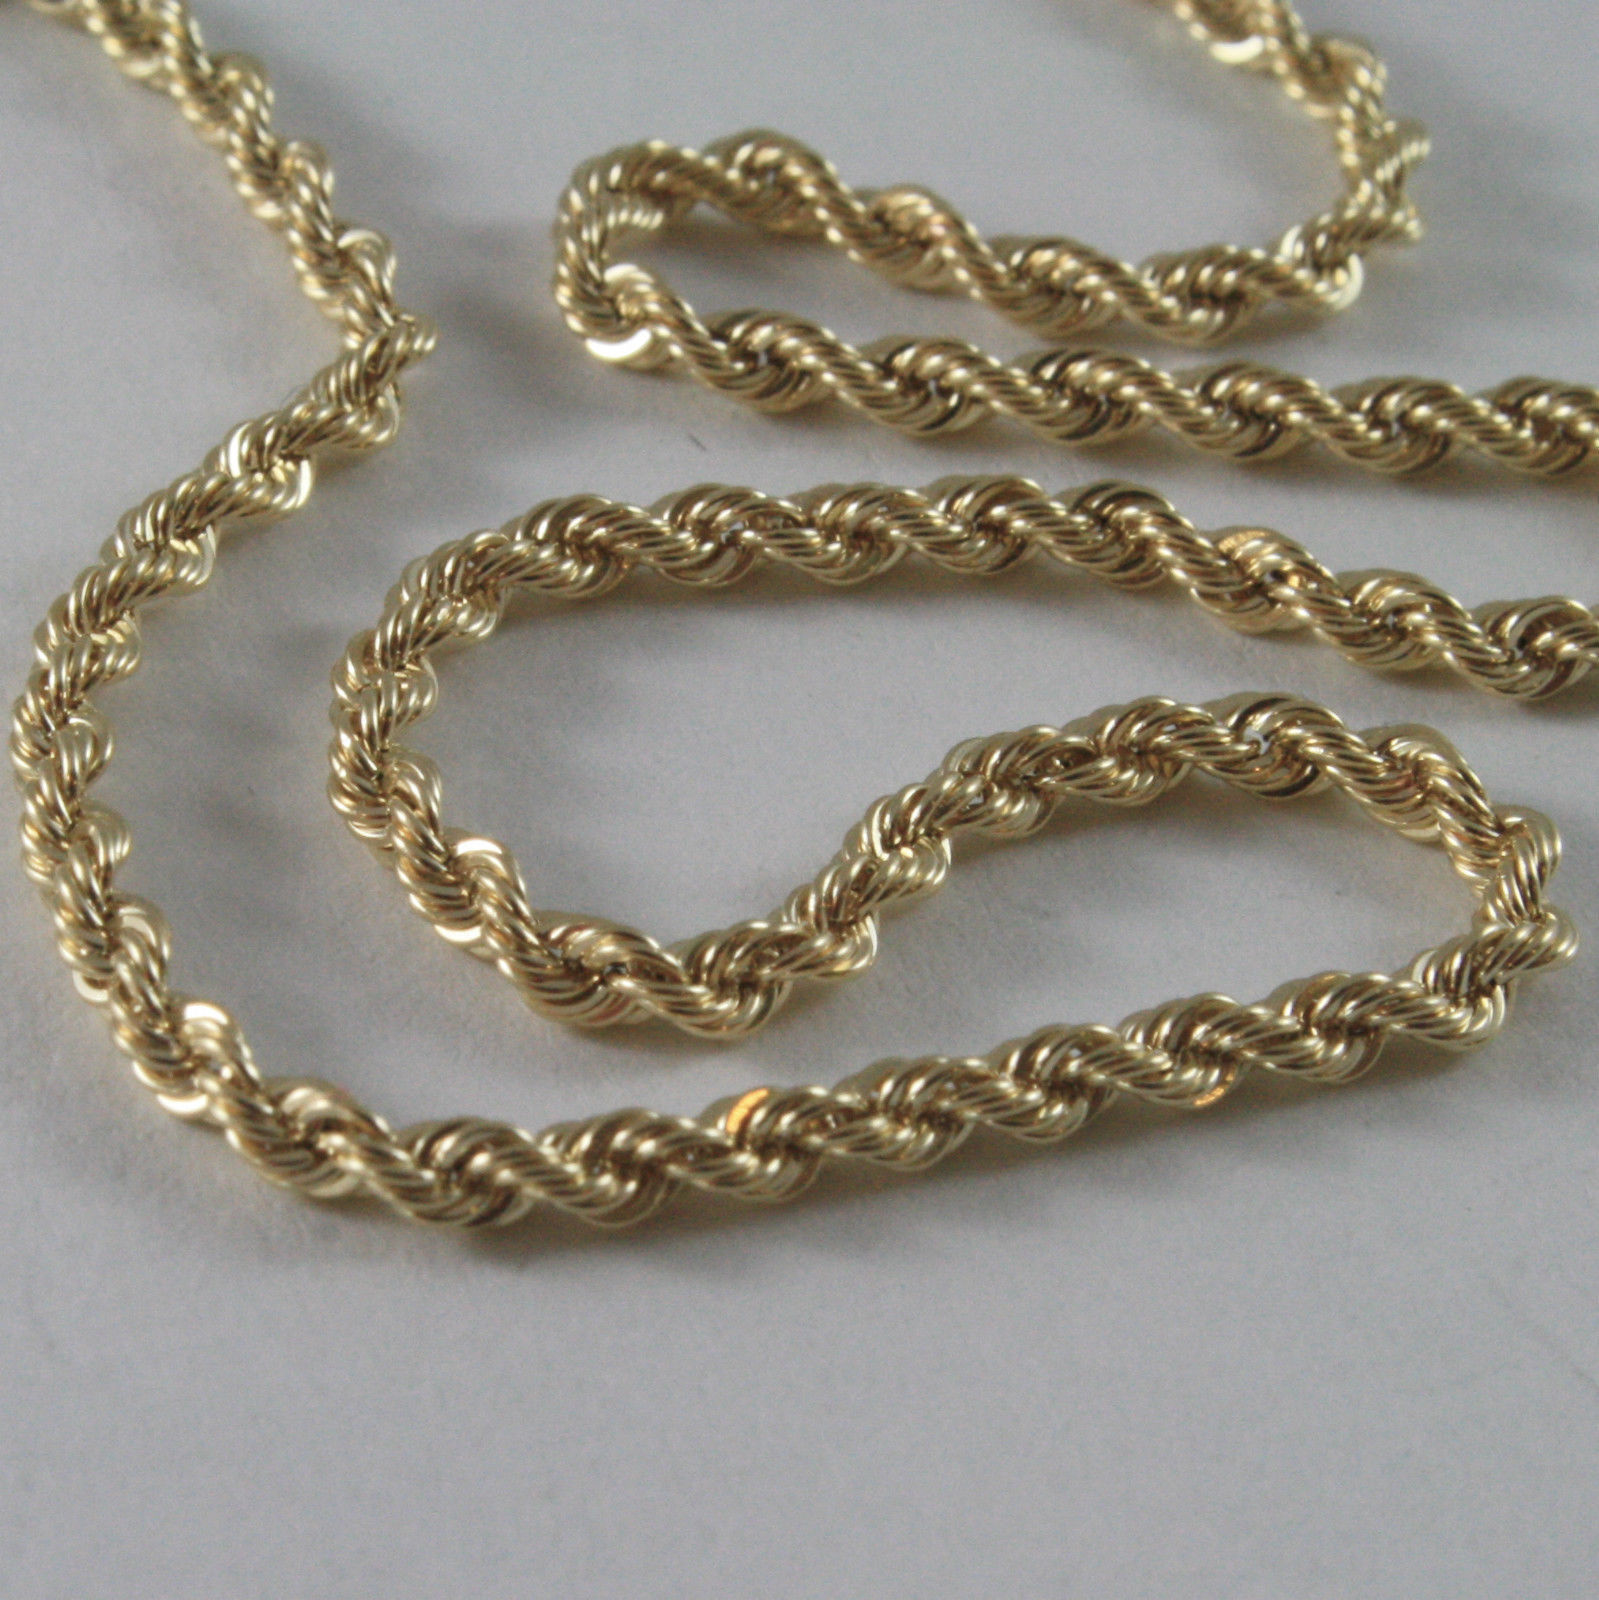 9K YELLOW GOLD ROPE CHAIN, 15.75, BRAID ROPE CORD, NECKLACE, MADE IN ITALY, 9KT